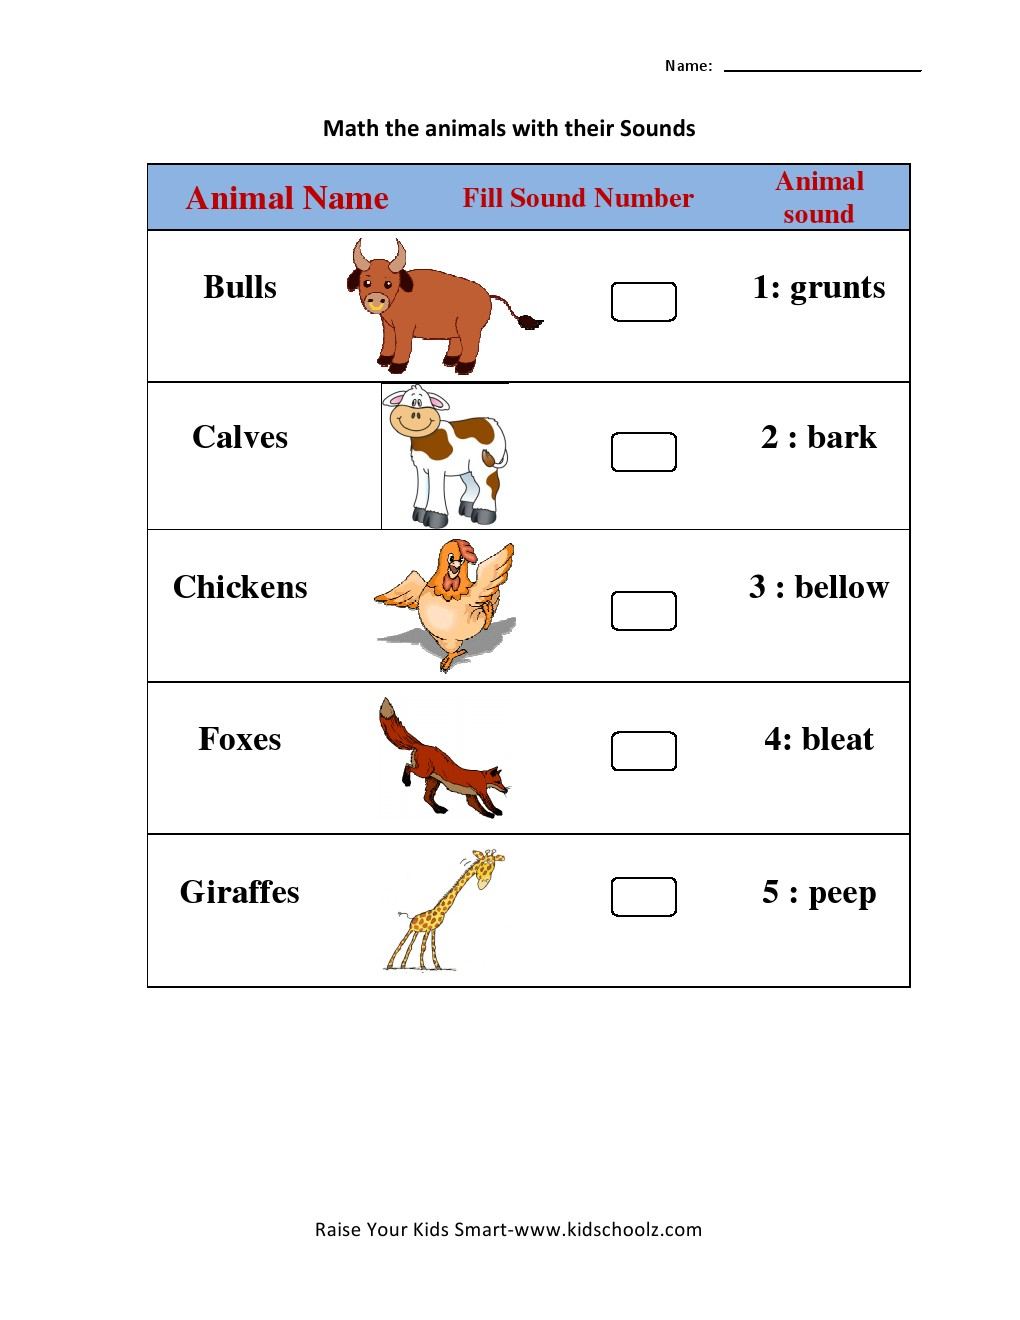 Animal Sound Matching Worksheets 6 : Kids Activity Sheets ...